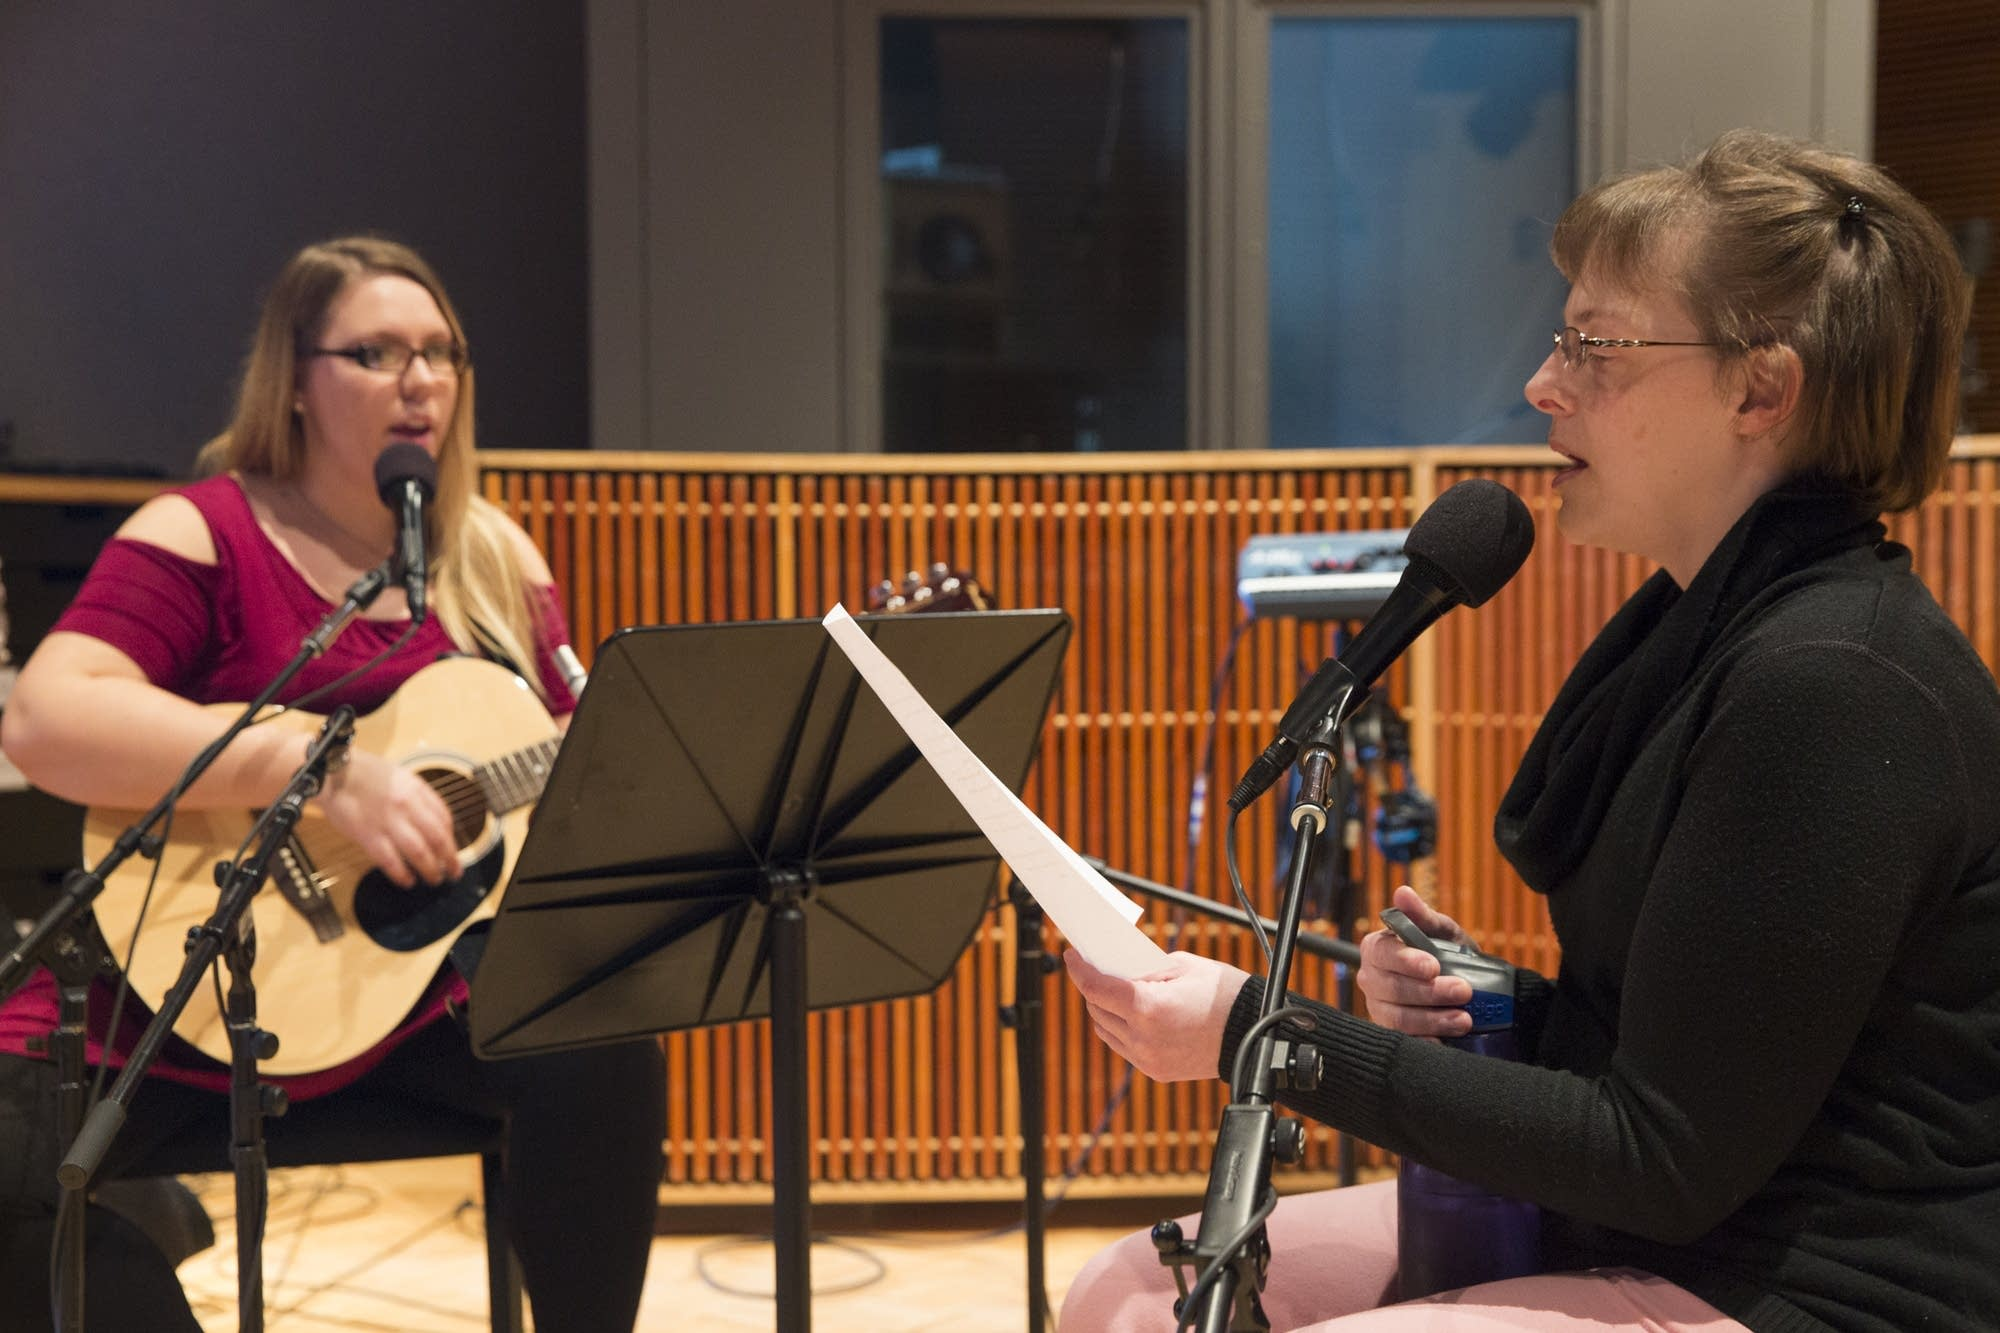 Mandy Blume, right, and her music therapist Haylee Brown perform a song